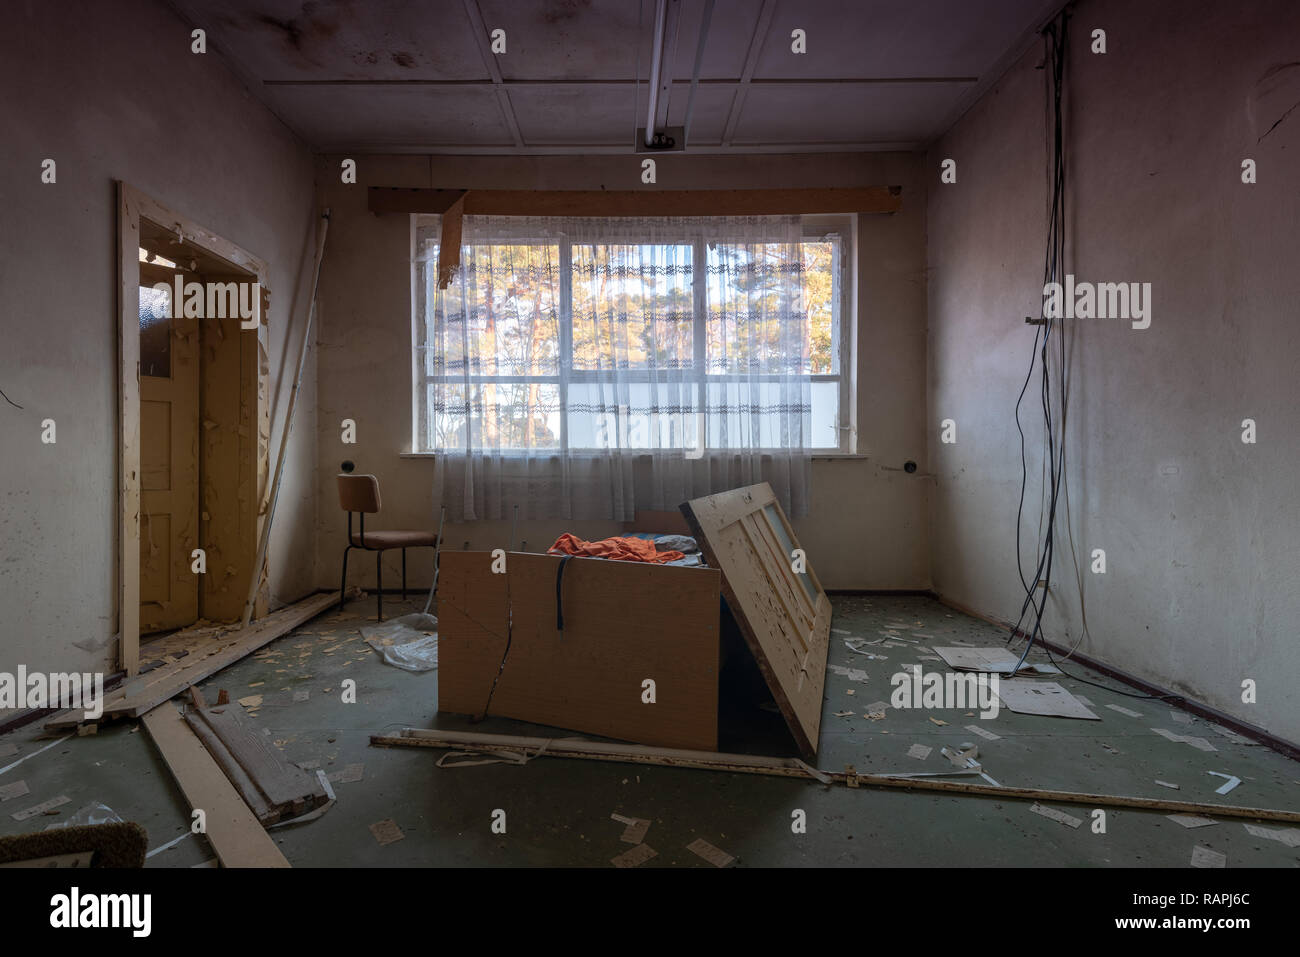 Prerow, Germany - December 30, 2018: View into an empty room of a barrack of the former training camp of the Gesellschaft für Sport und Technik in Pre - Stock Image